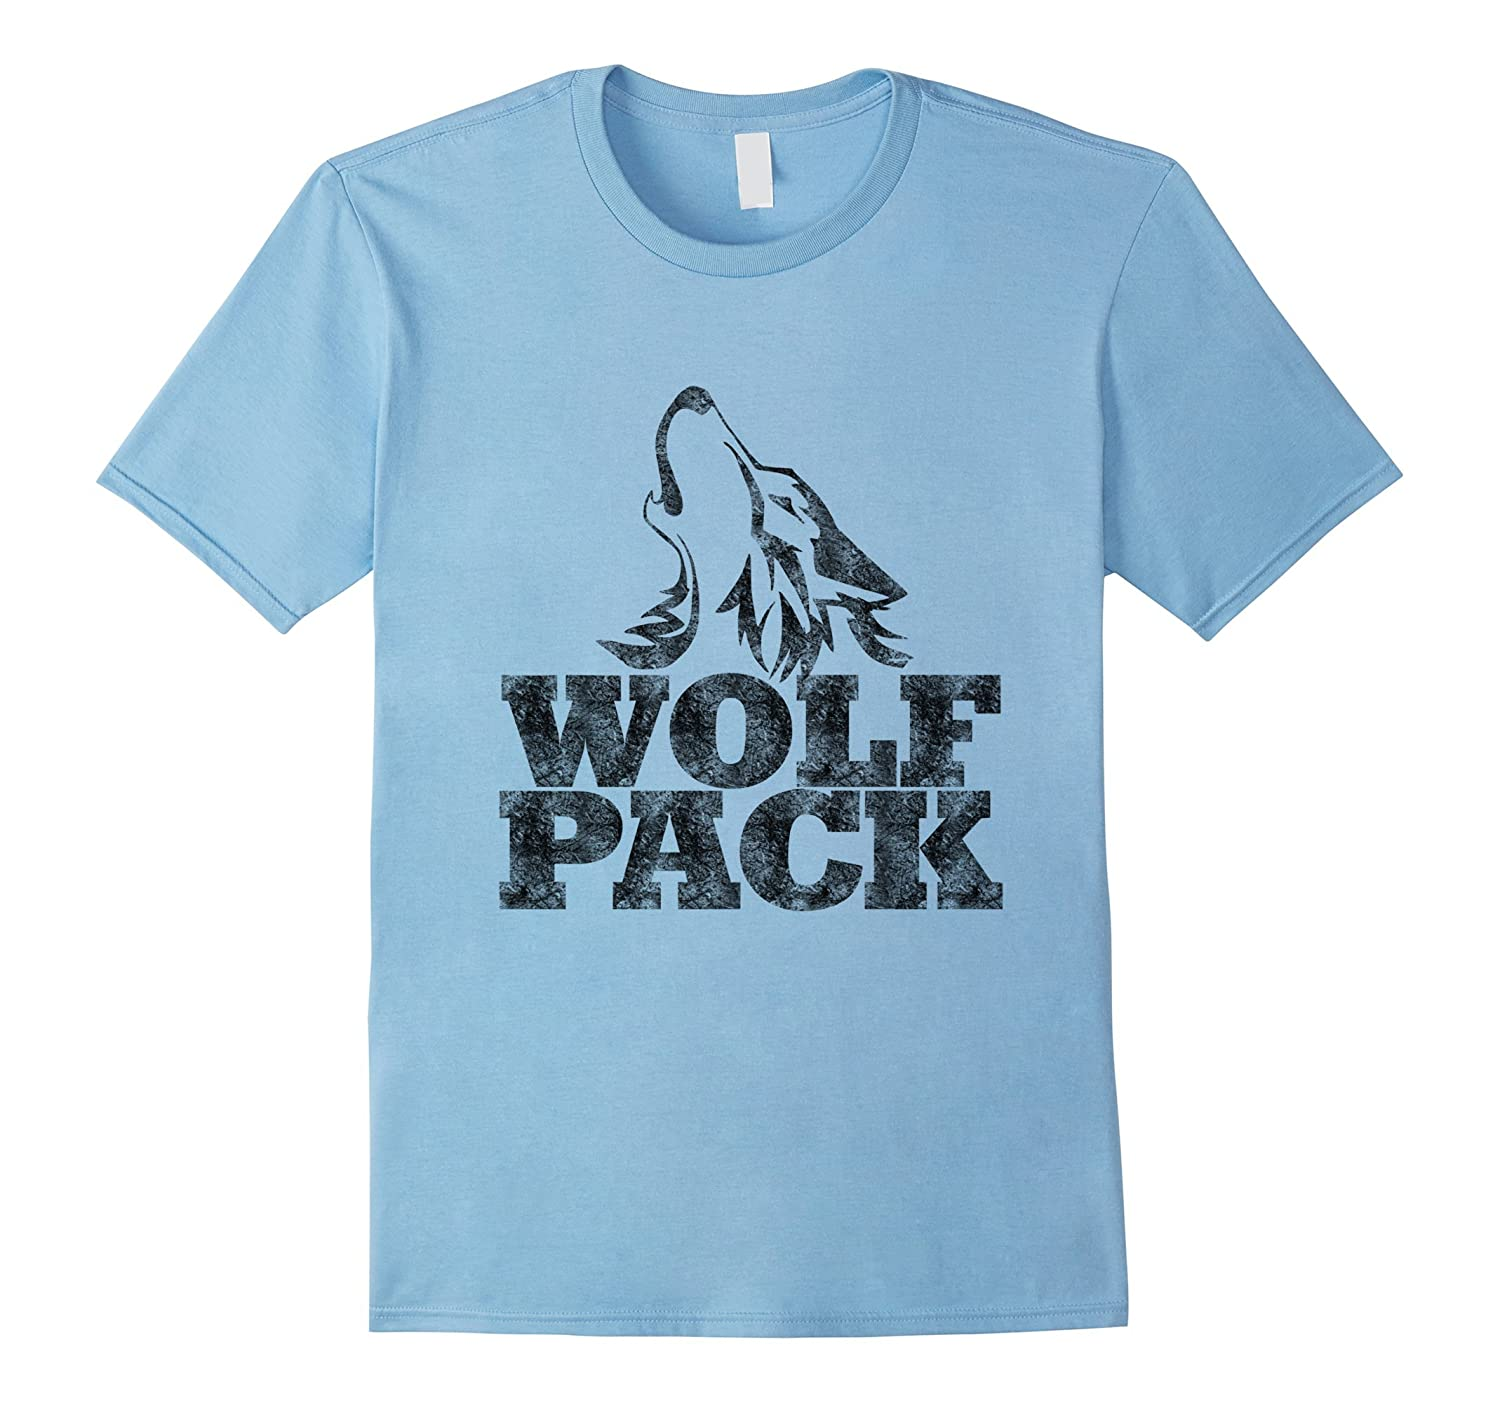 Wolf pack t shirt funny vintage art artvinatee for Amazon review wolf shirt